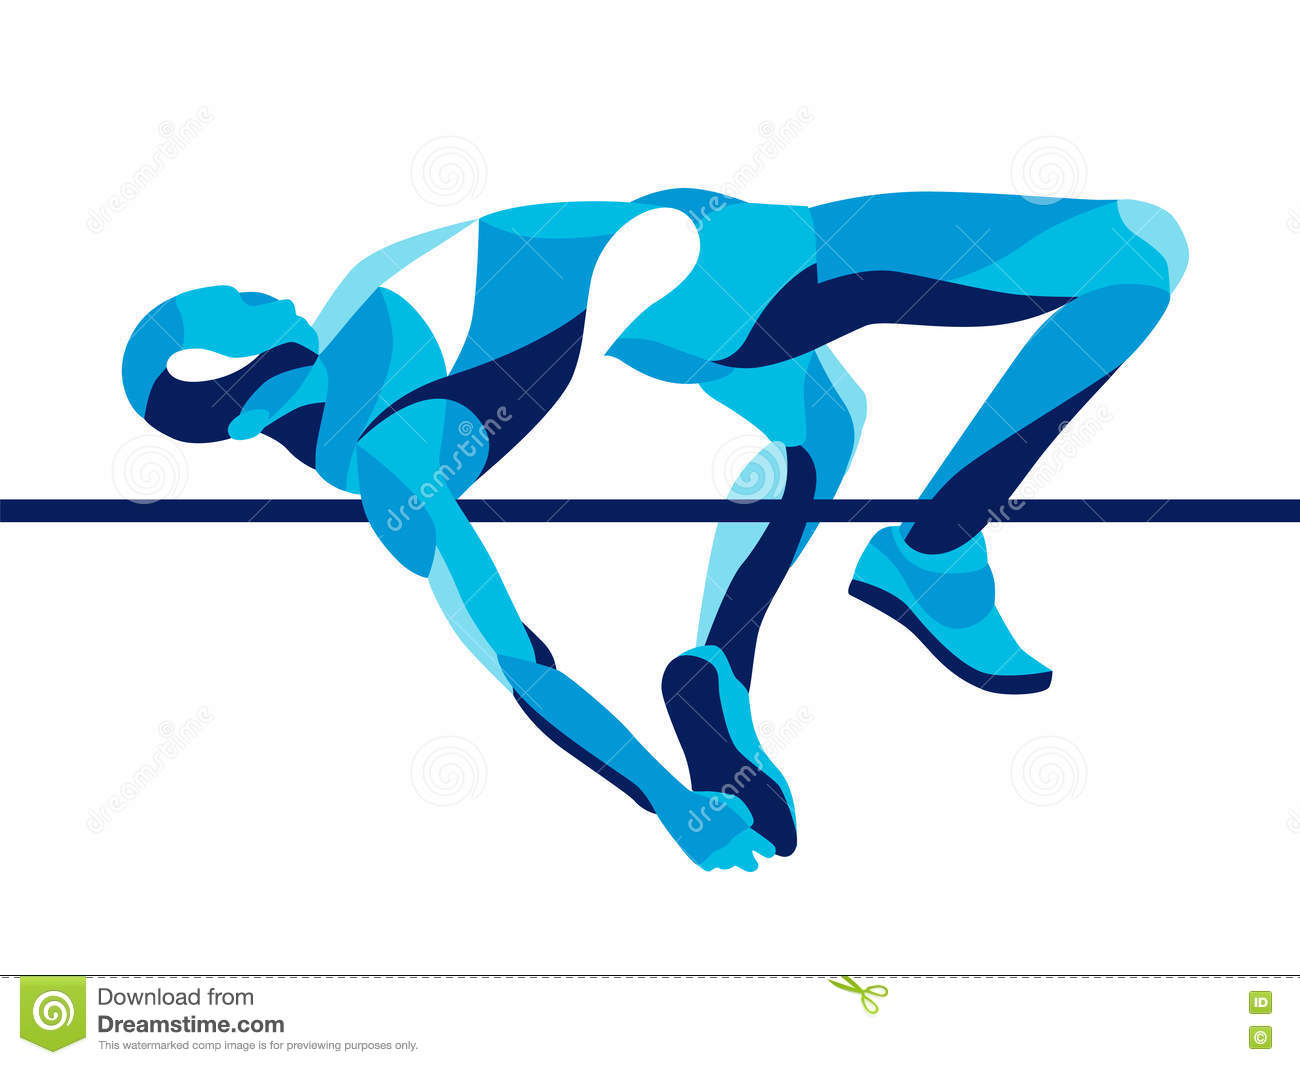 Trendy stylized illustration movement, high jump athlete composed of wave shape.